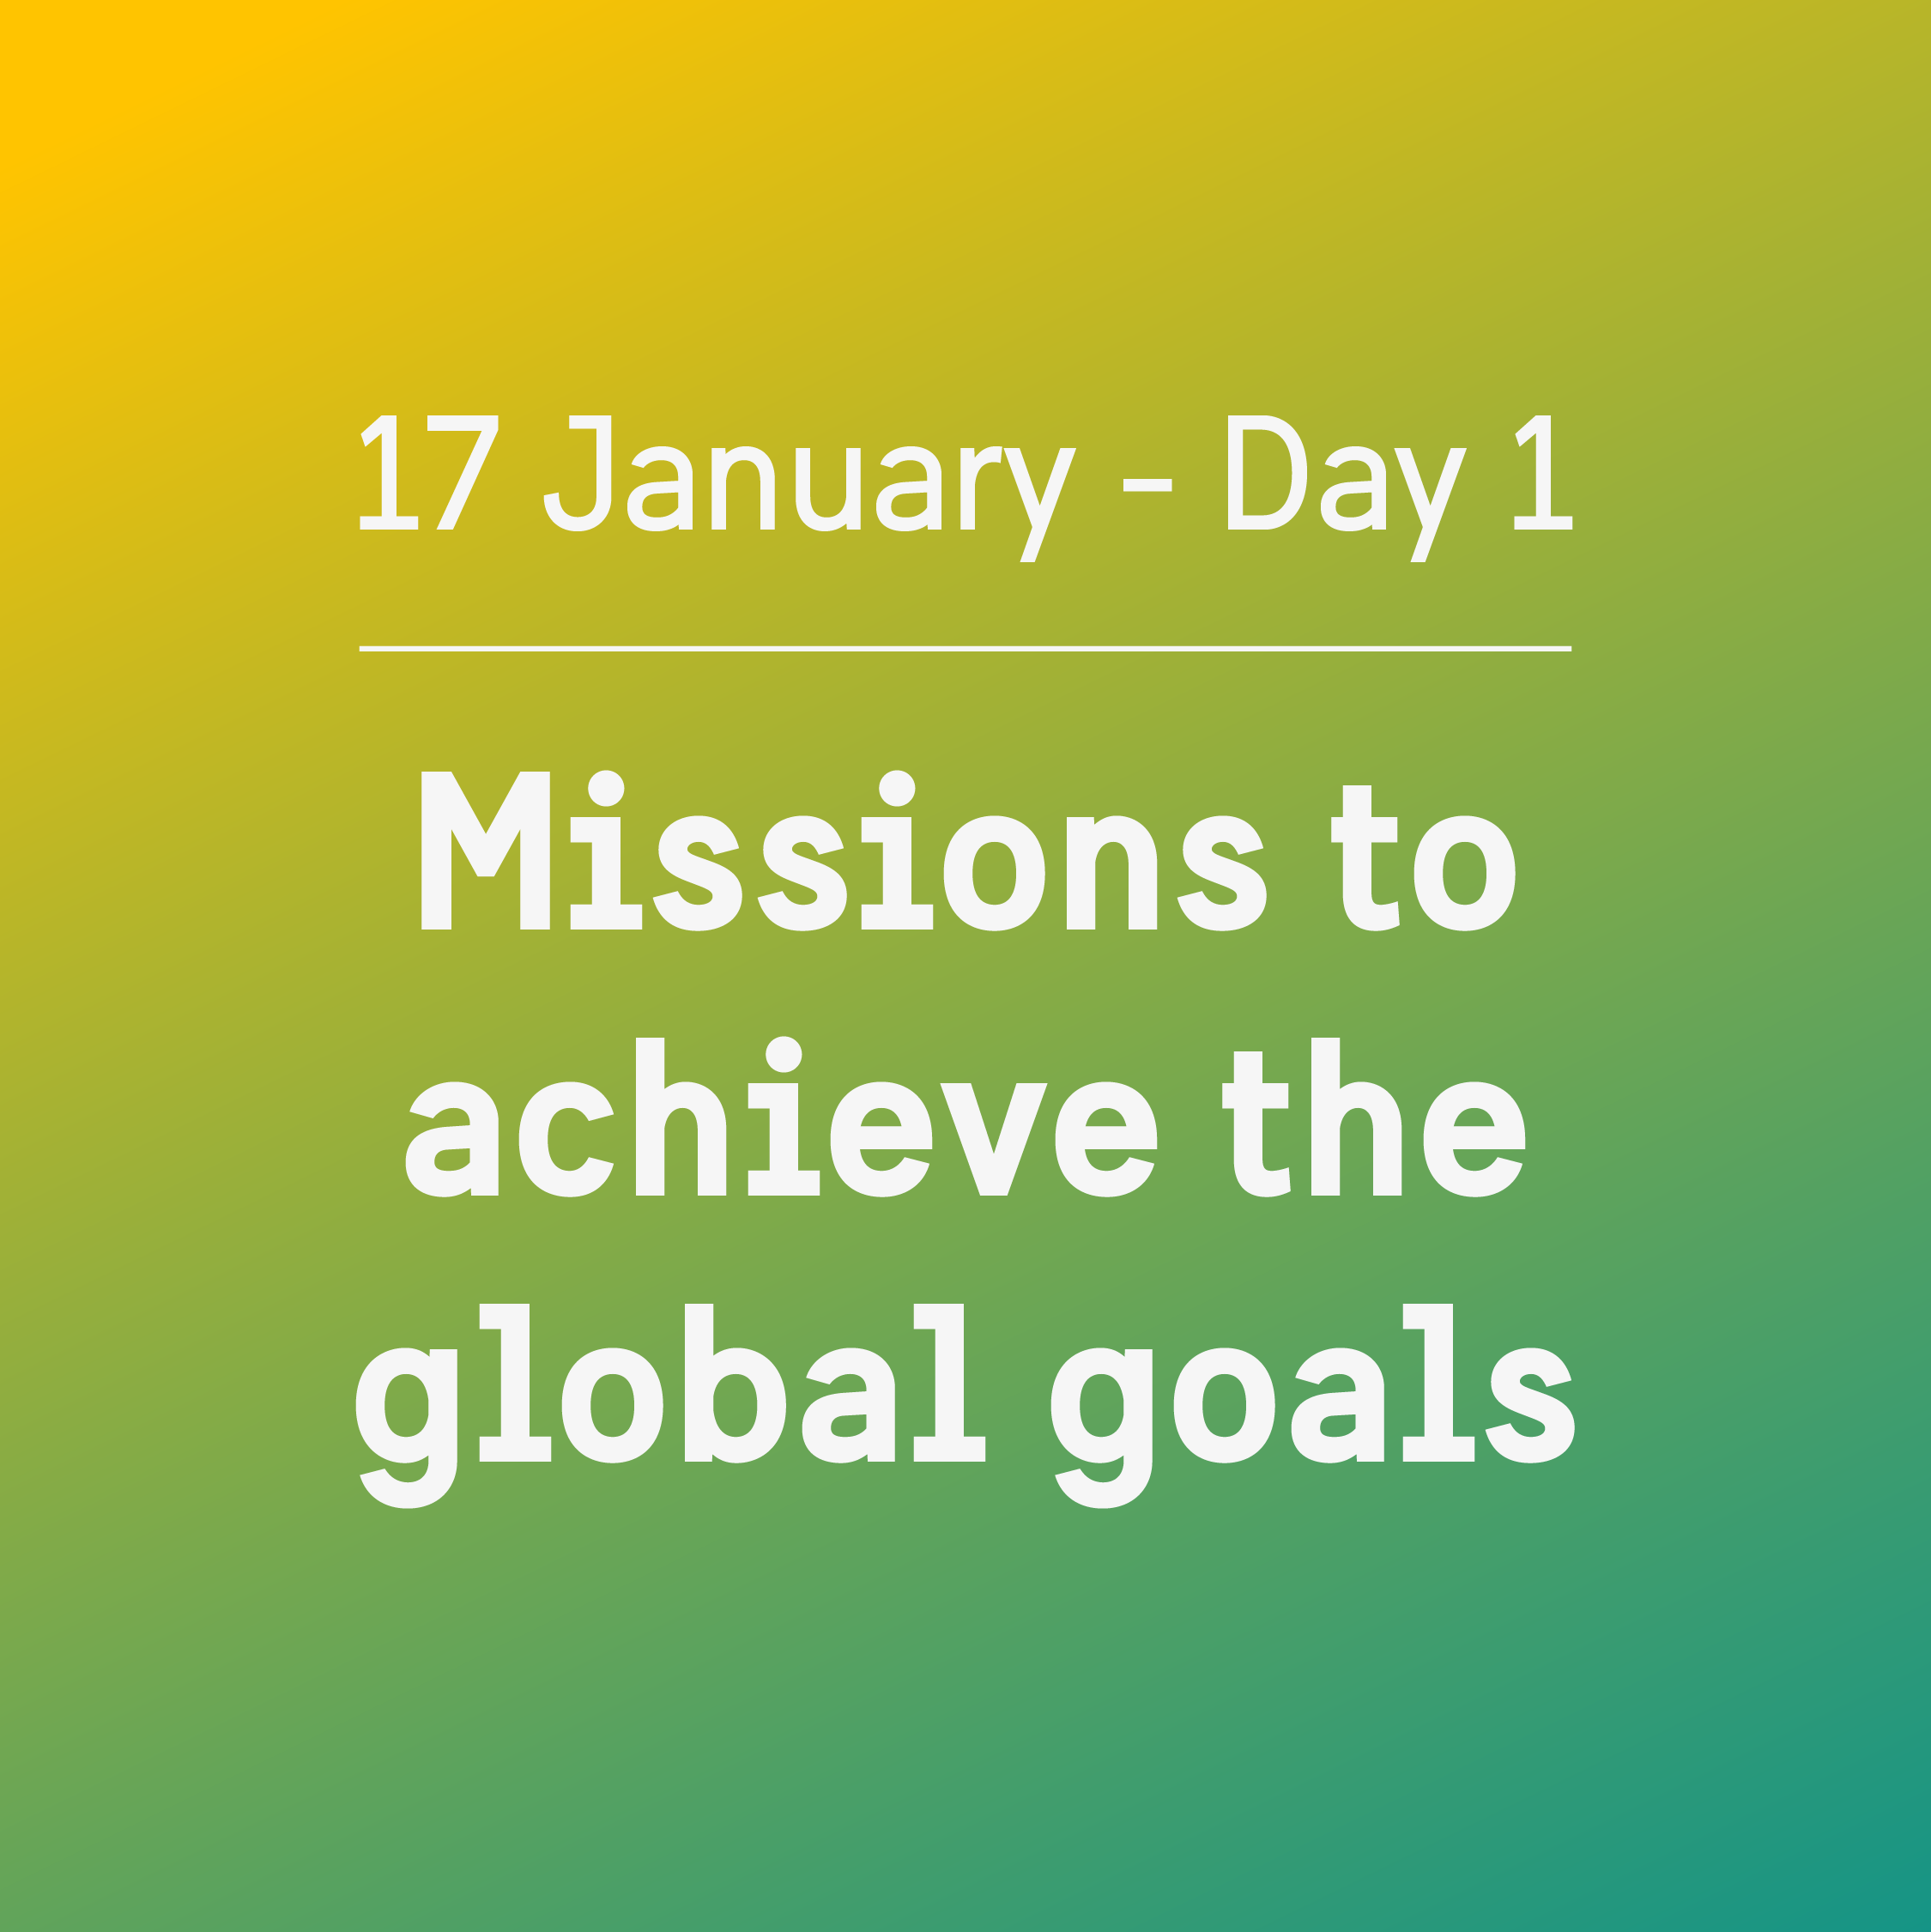 Agenda Day 1: Mission to achieve the global goals